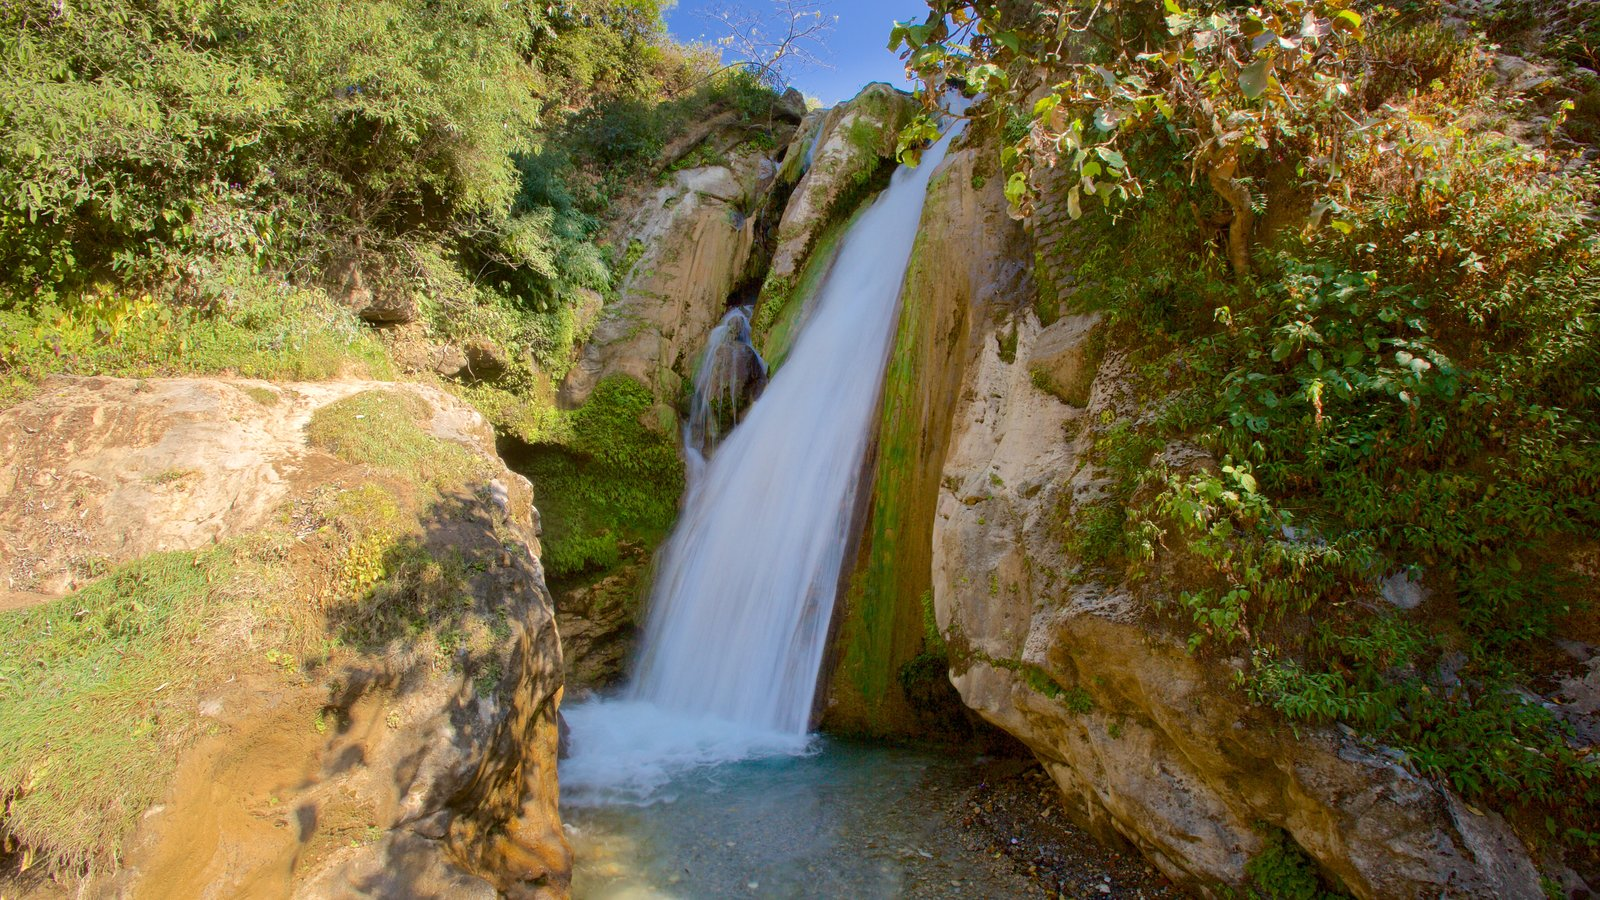 Bhata Falls featuring tranquil scenes and a waterfall